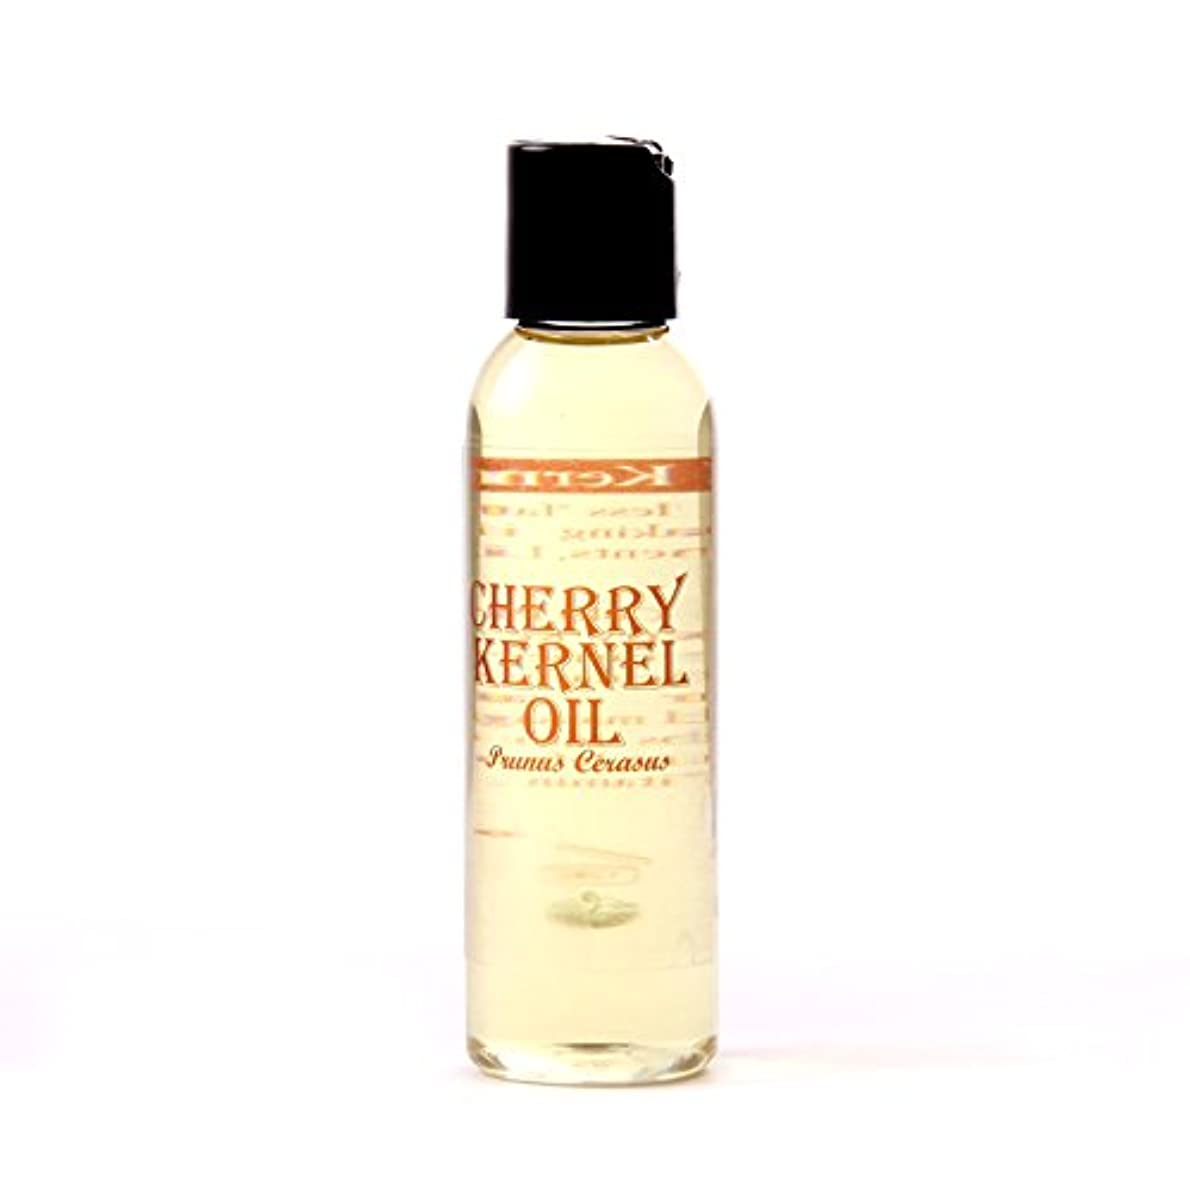 一杯まで気づくMystic Moments | Cherry Kernel Carrier Oil - 125ml - 100% Pure